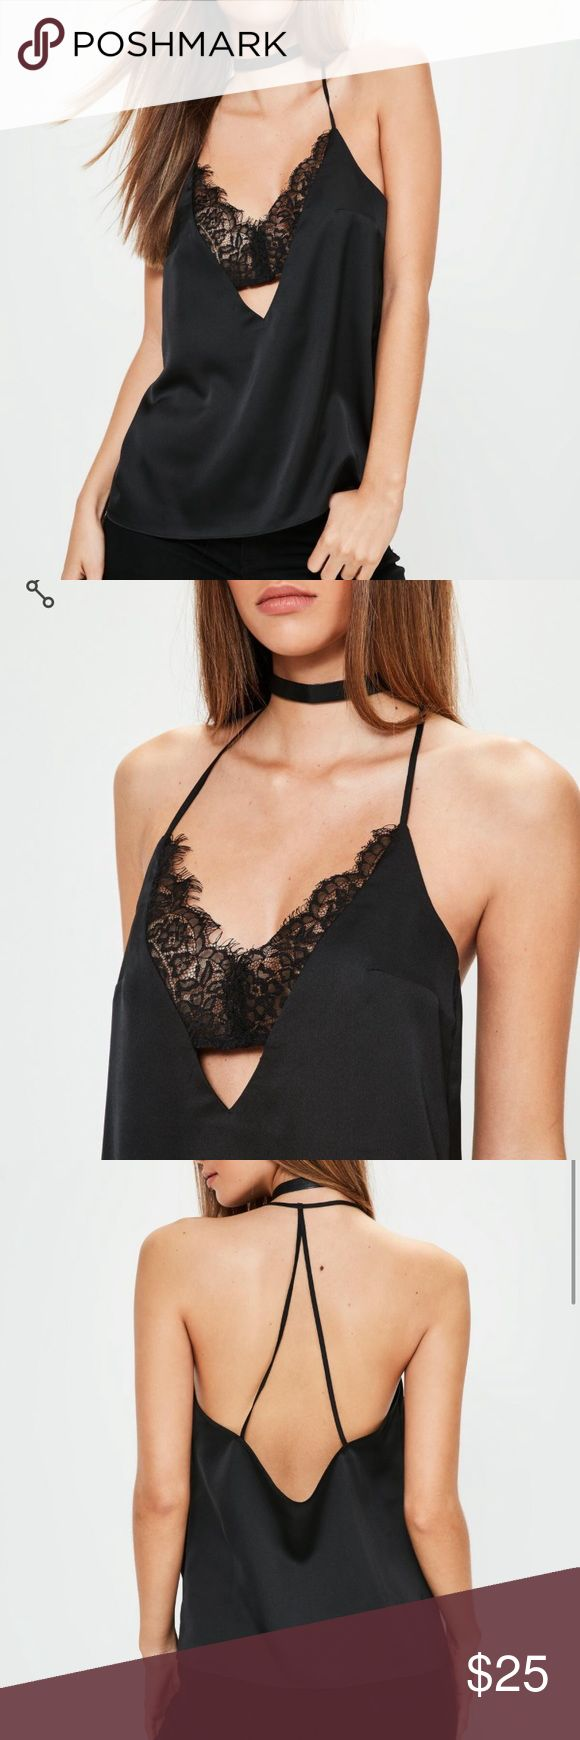 Spotted while shopping on Poshmark: NWT Black Satin Lace Insert Cami Top Sz 8! #poshmark #fashion #shopping #style #Missguided #Tops